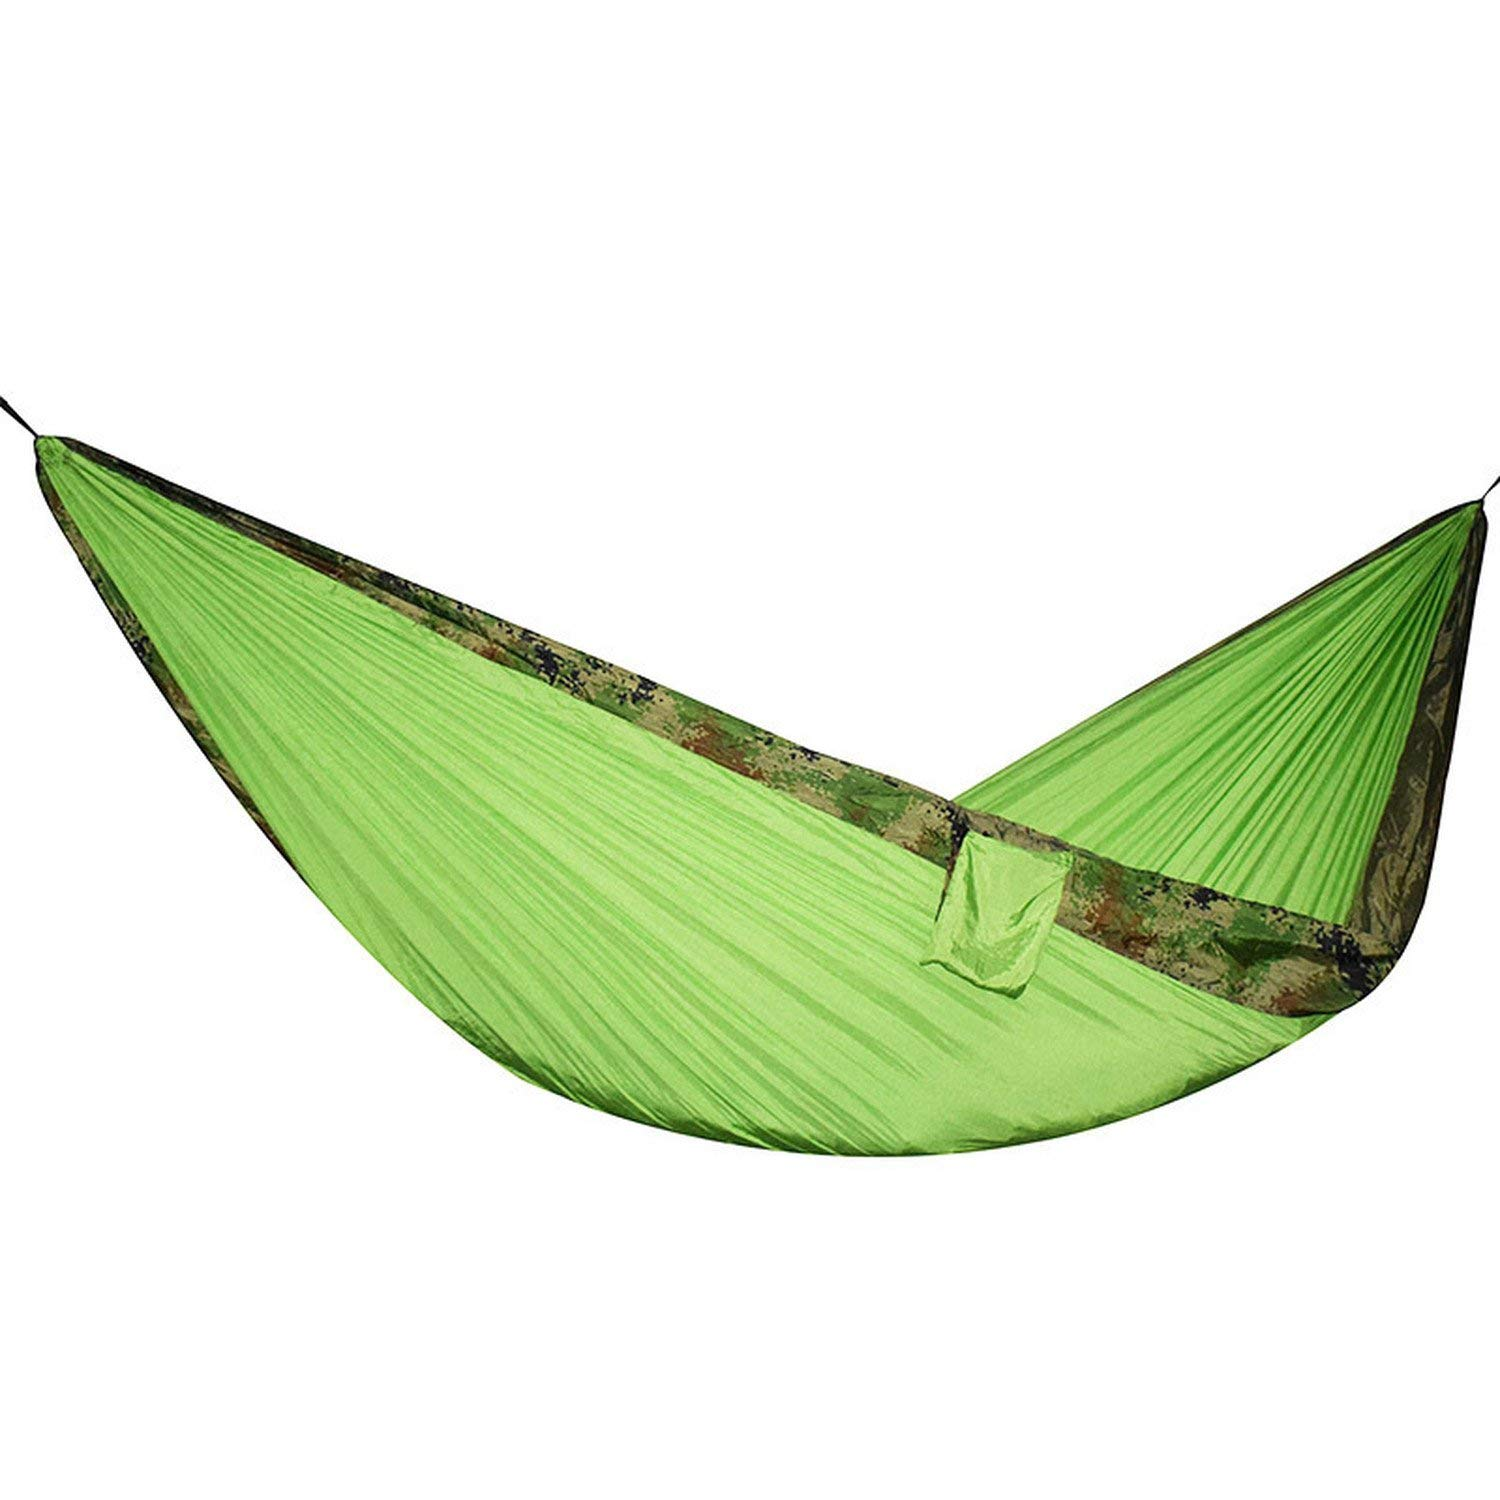 Mandaartins 24 Color 2 People Portable Parachute Hammock Camping Survival Garden Flyknit Hunting Leisure Hamac Travel Double Person Hamak,camouflage edge